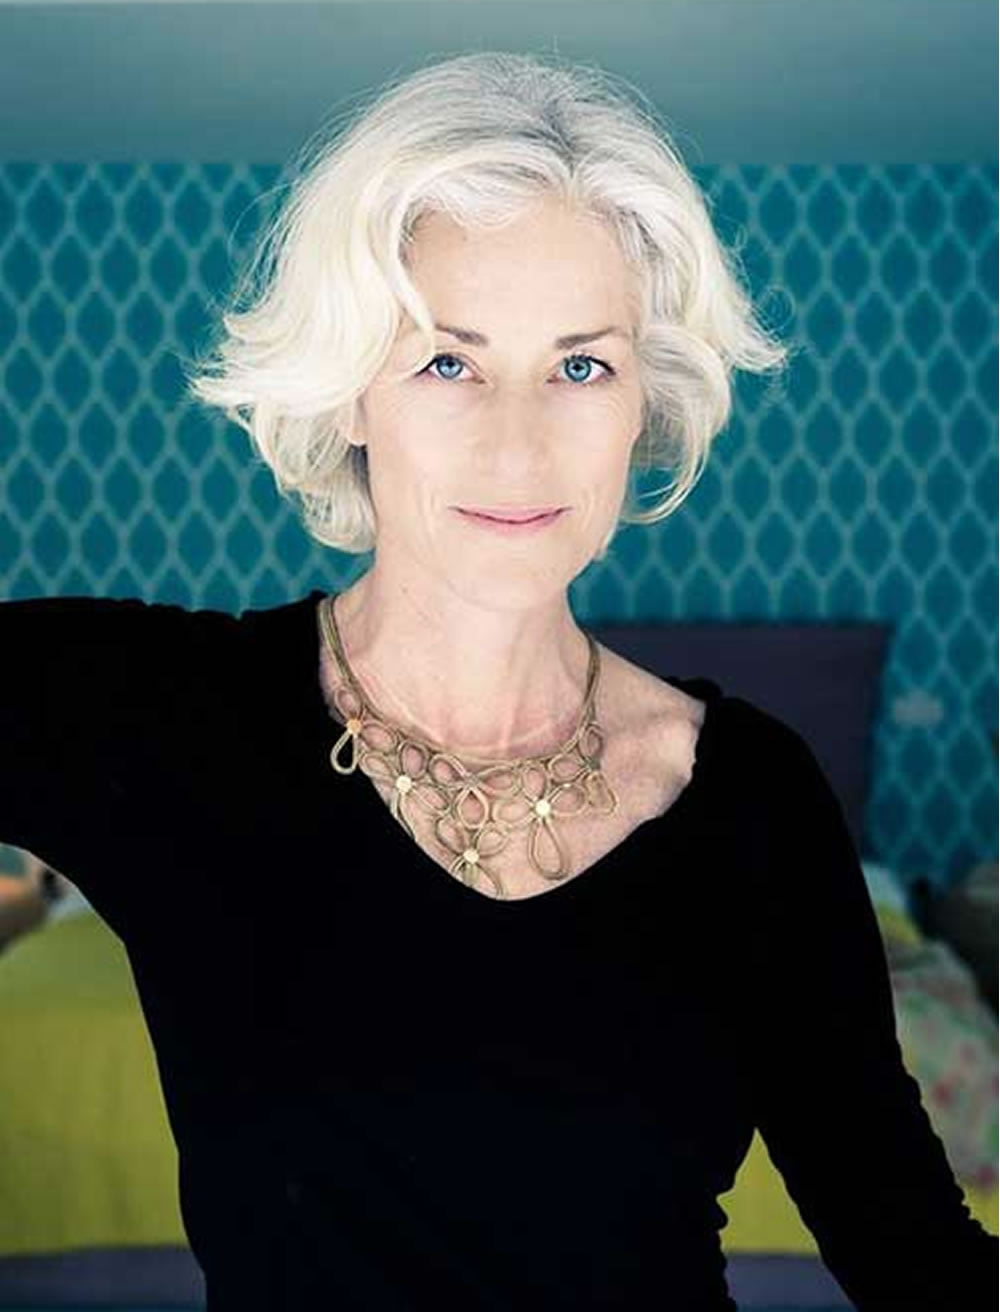 hairstyles over 50 on pinterest short hairstyles for very stylish short haircuts for older women over 50 page